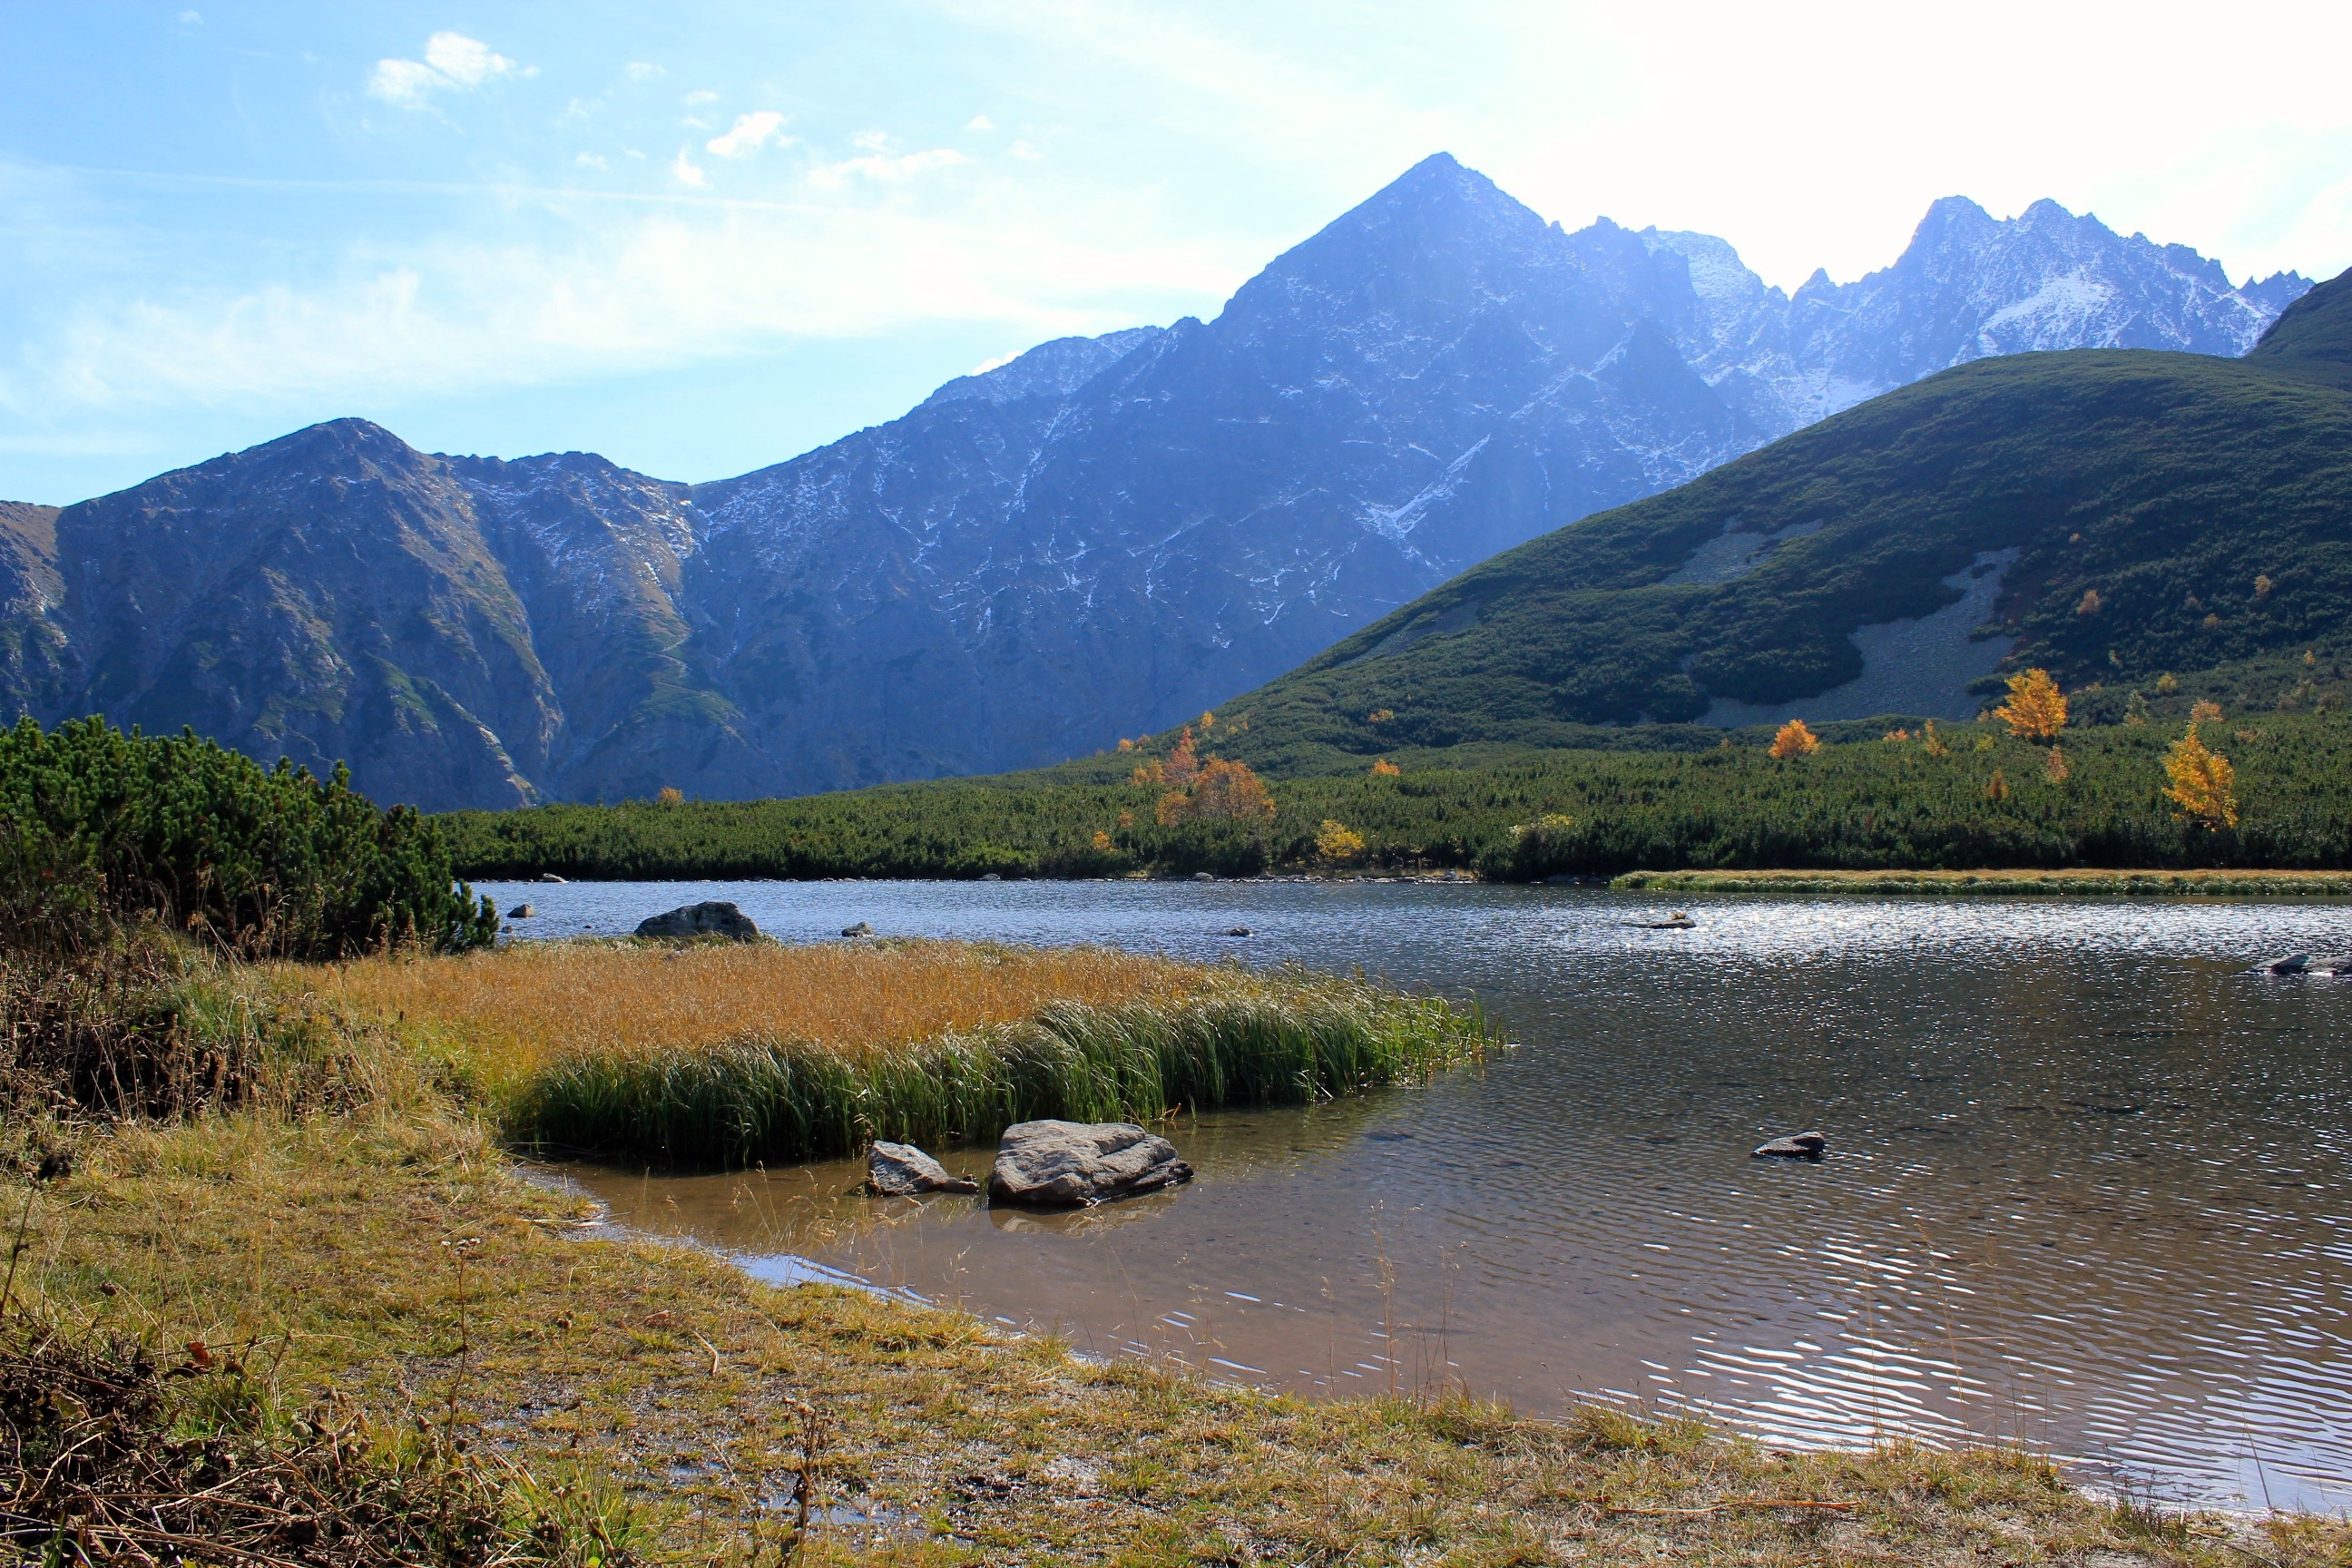 Hiking The High Tatras Mountains, Slovakia